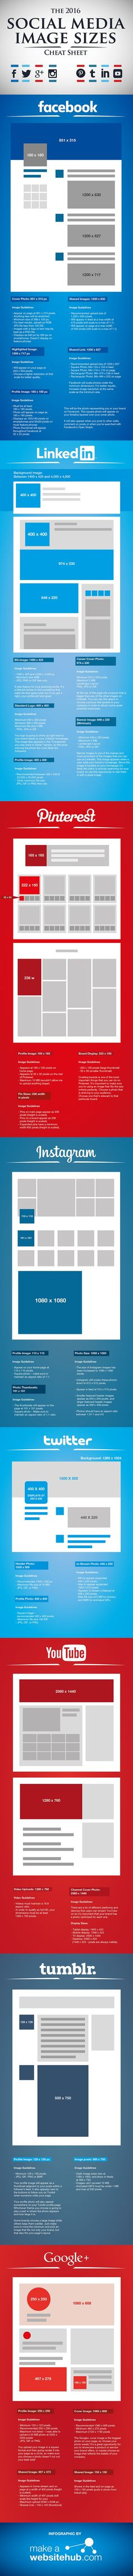 Infografik: Socia Media Image Cheat Sheet